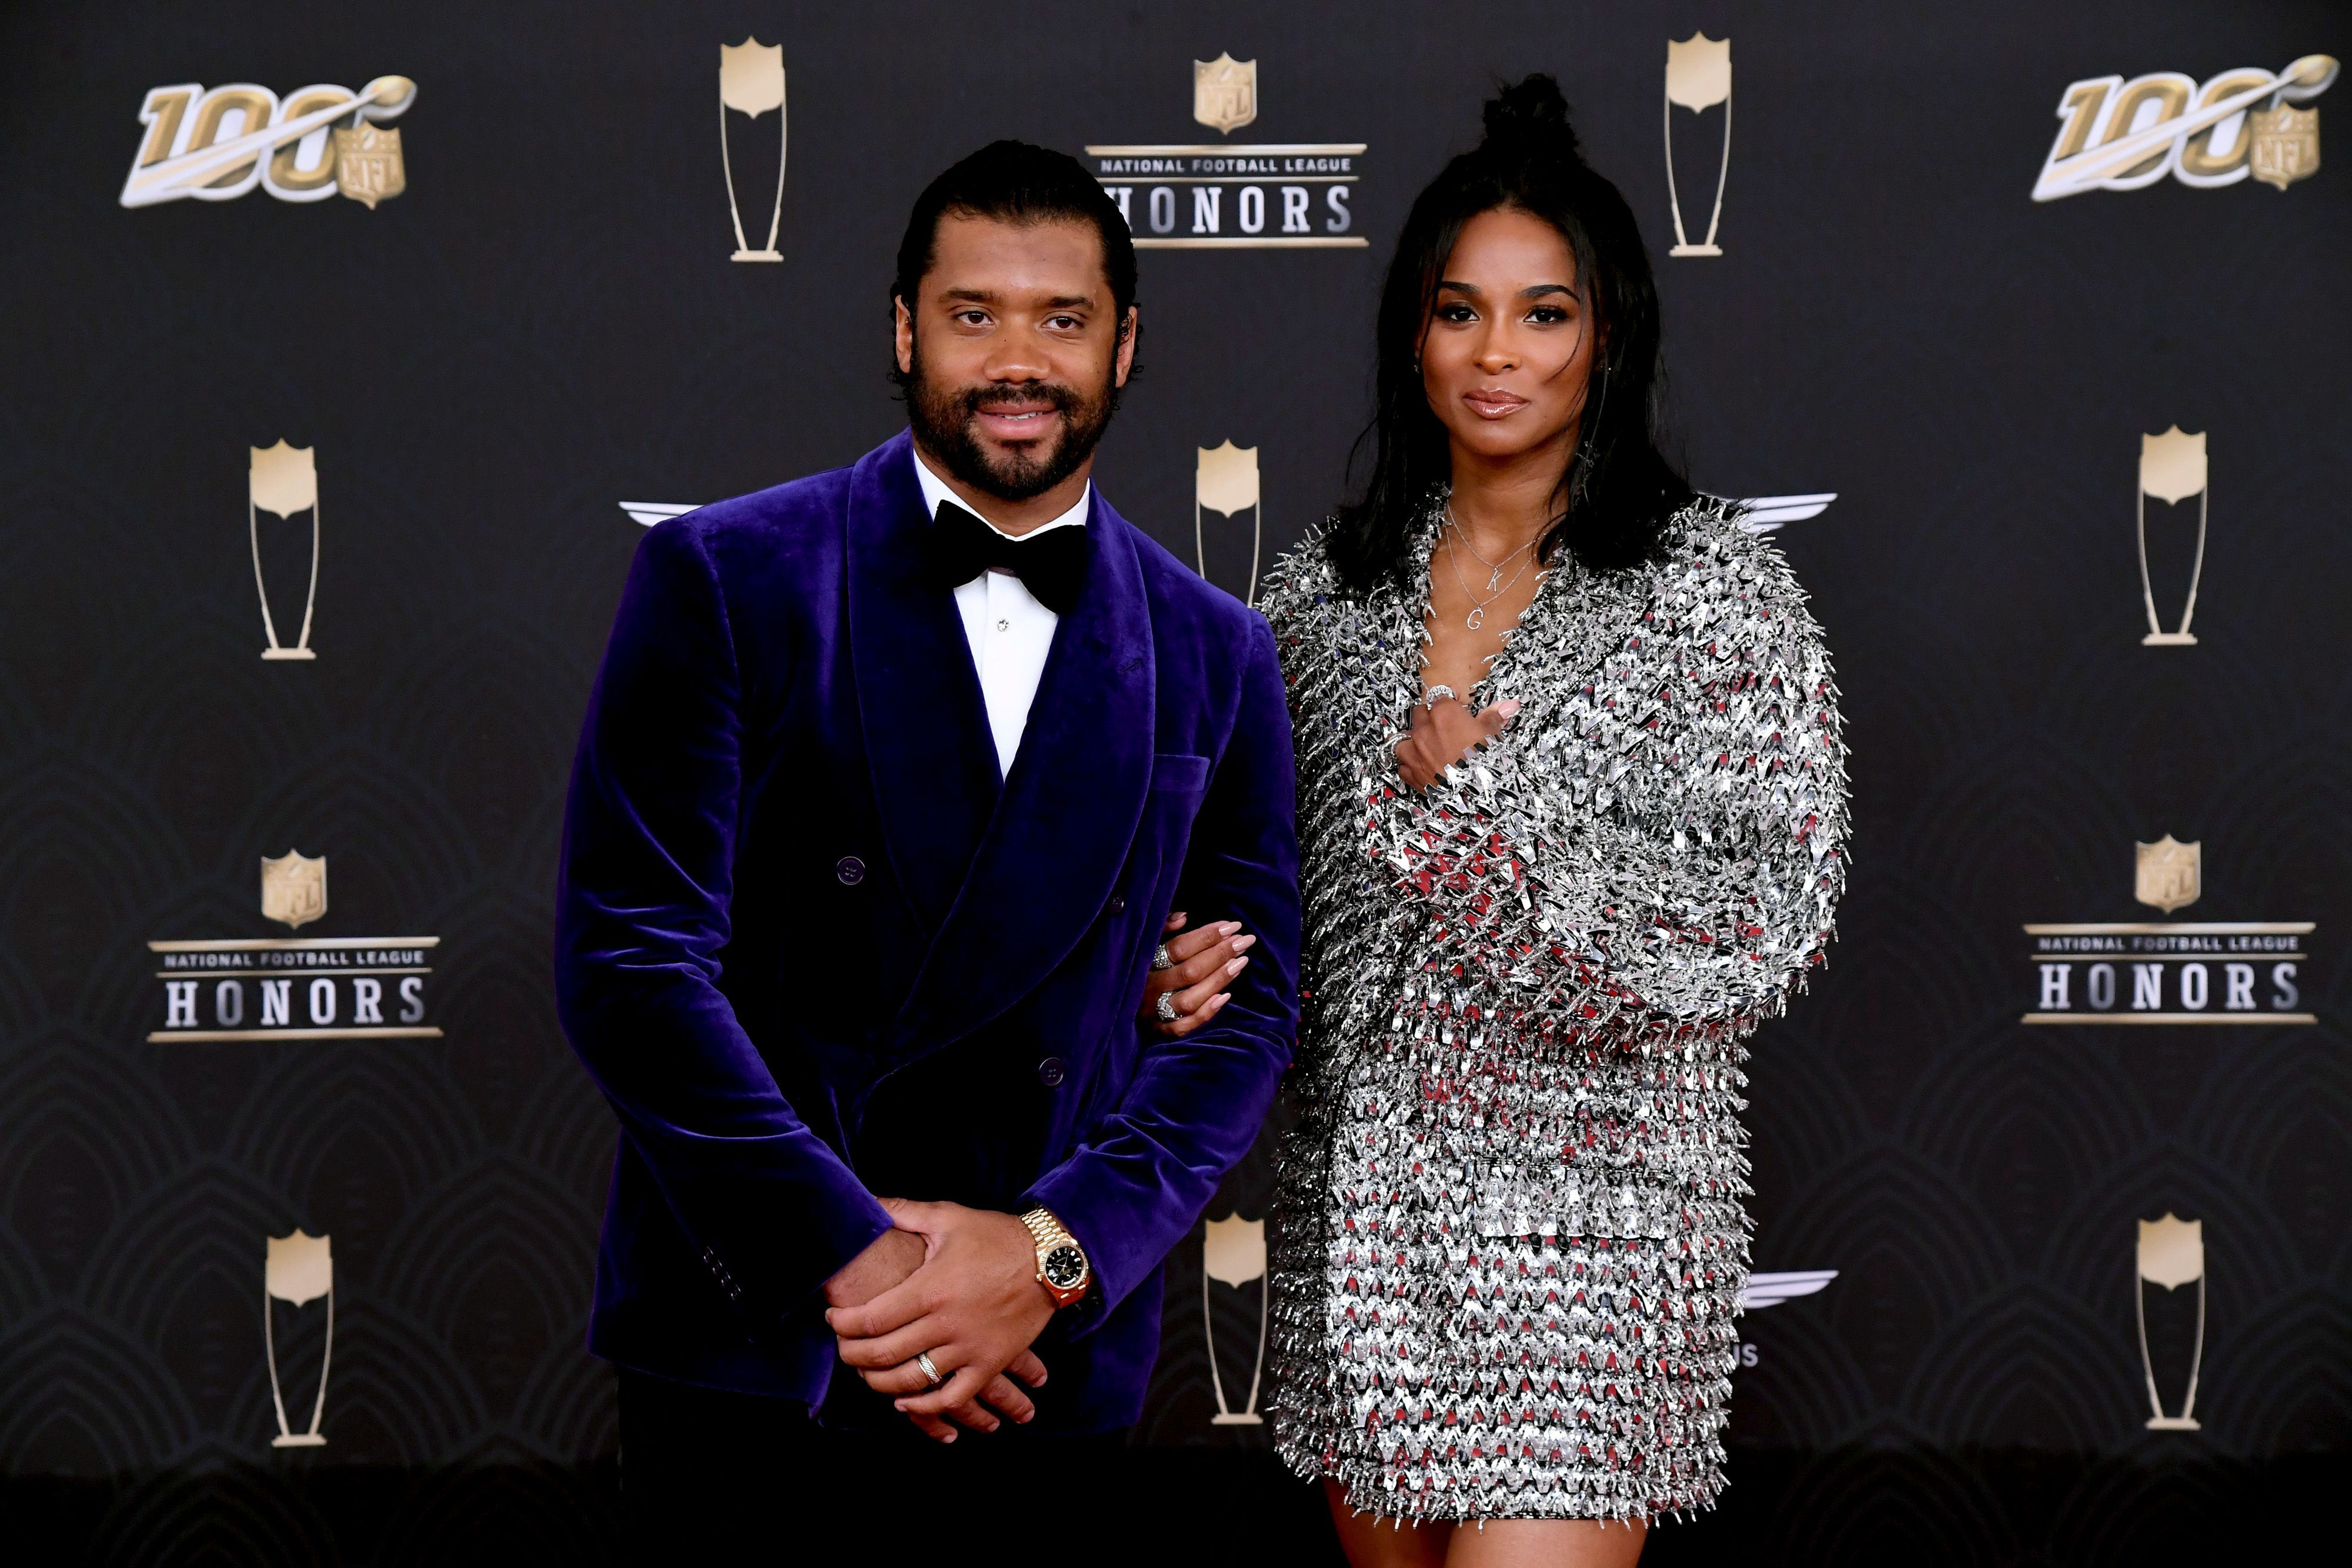 Russell Wilson and Ciara attend the 9th Annual NFL Honors at Adrienne Arsht Center on February 01, 2020 | Photo: Getty Images